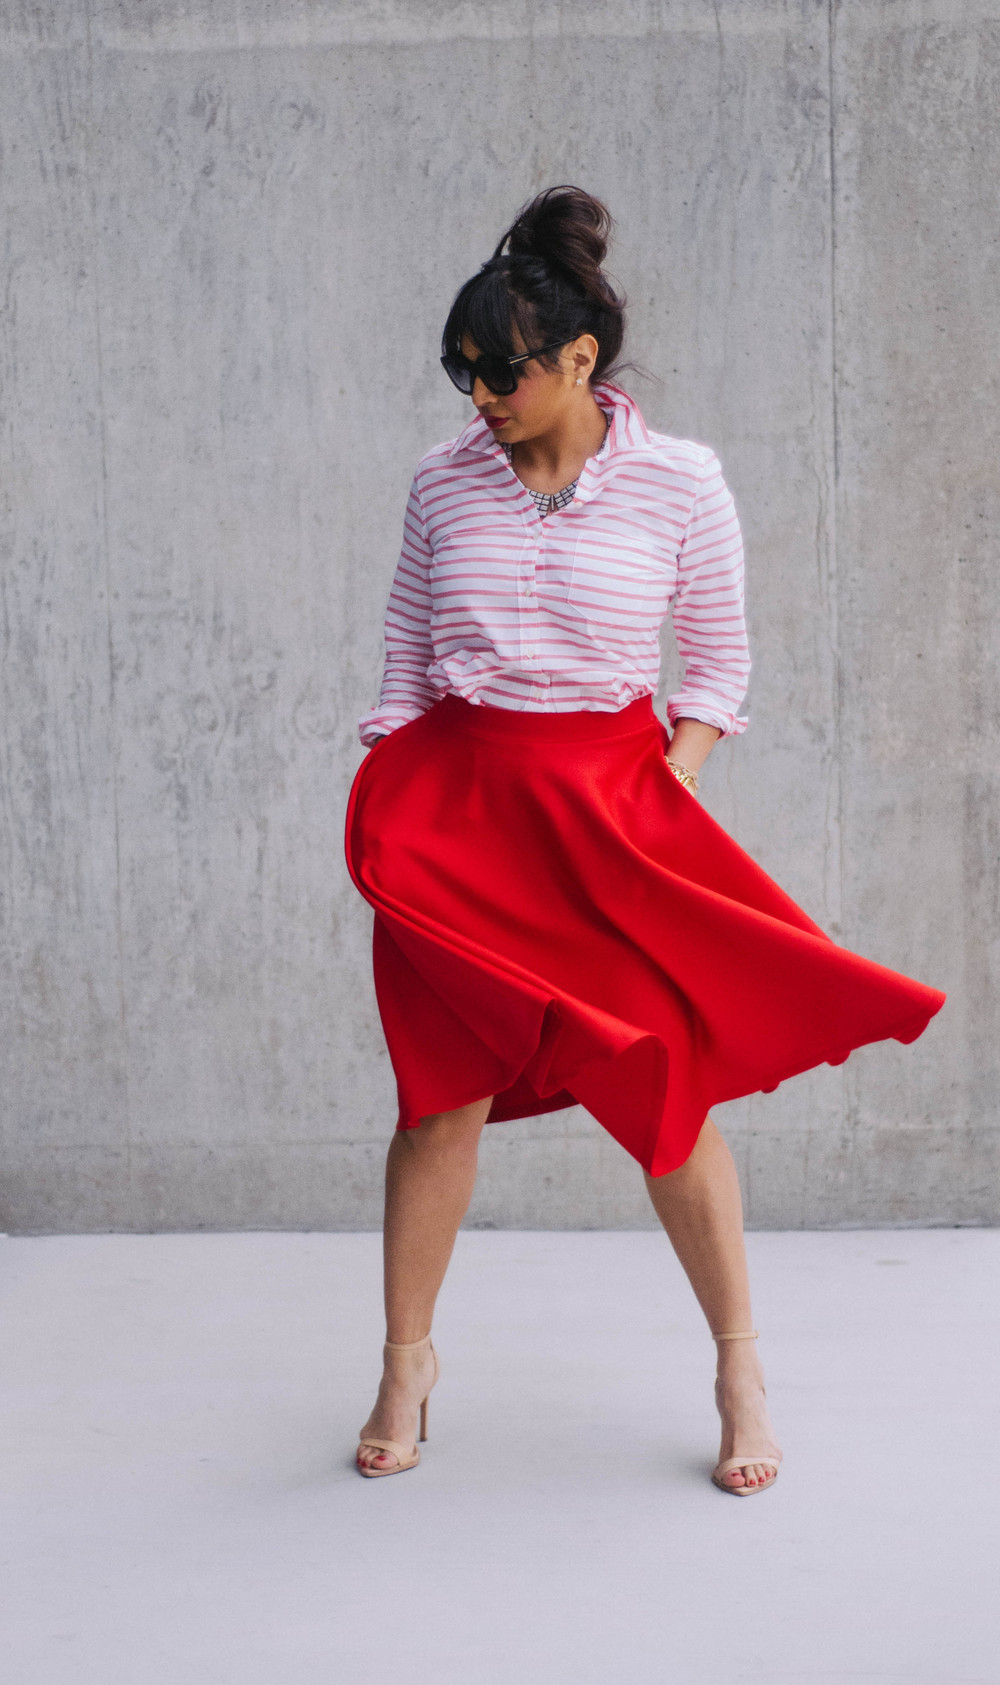 Skirt:  ASOS  | Shirt:  Gap  | Shoes:  Zara  | Sunglasses:  Tom Ford  | Necklace: J.Crew (similar  here ) | Watch: Michael Kors (also love  this one )